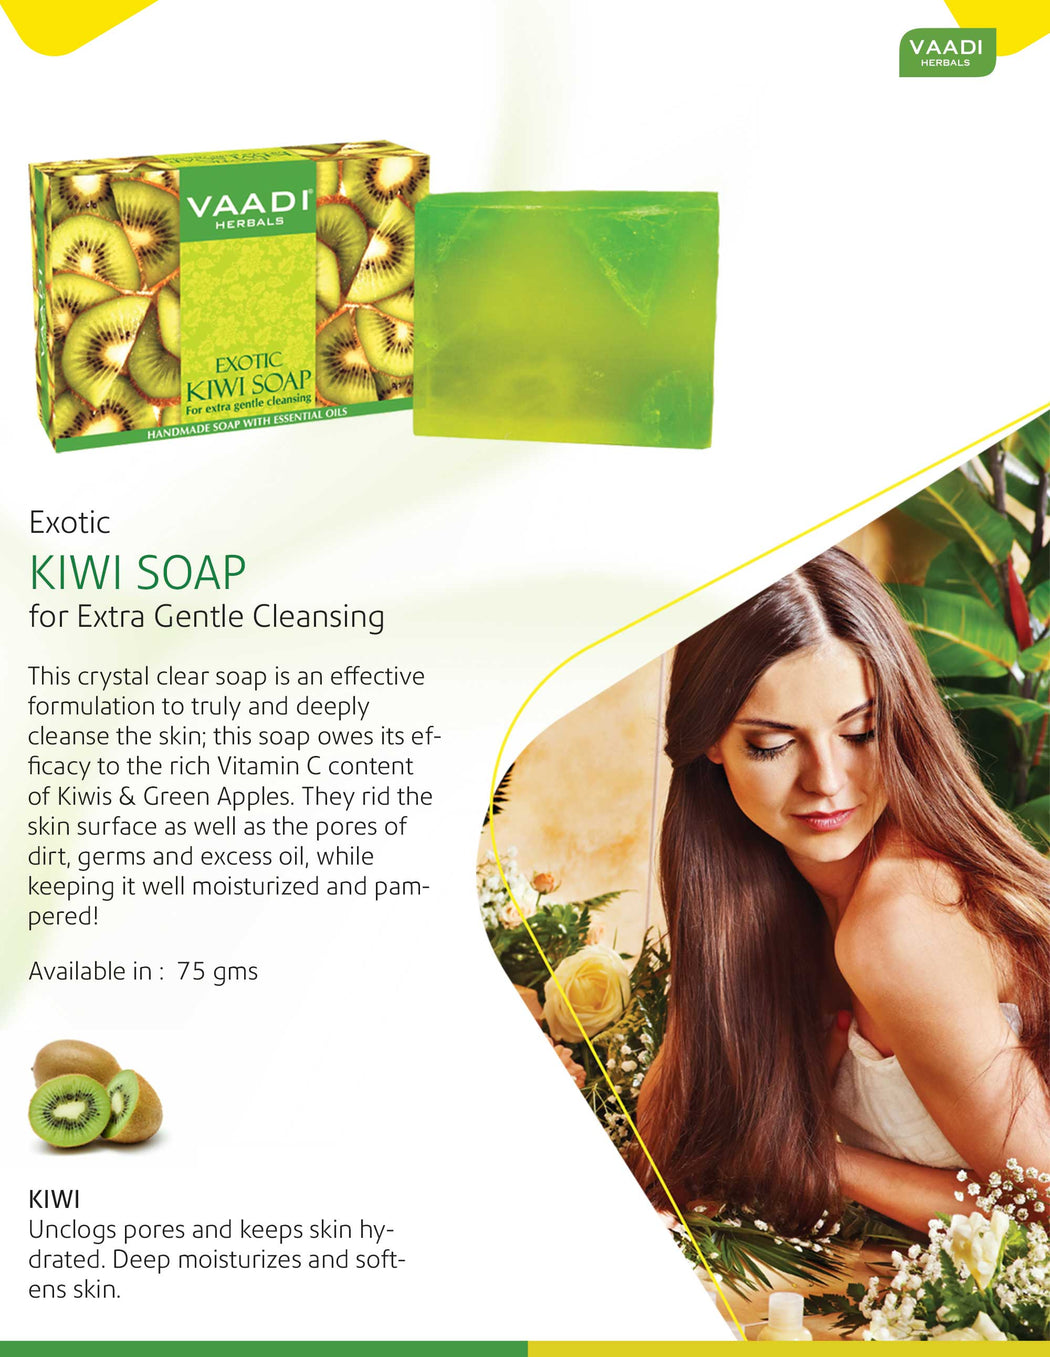 Exotic Organic Kiwi Soap with Green Apple Extract - Gently Clears Skin (3 x 75 gms / 2.7 oz)